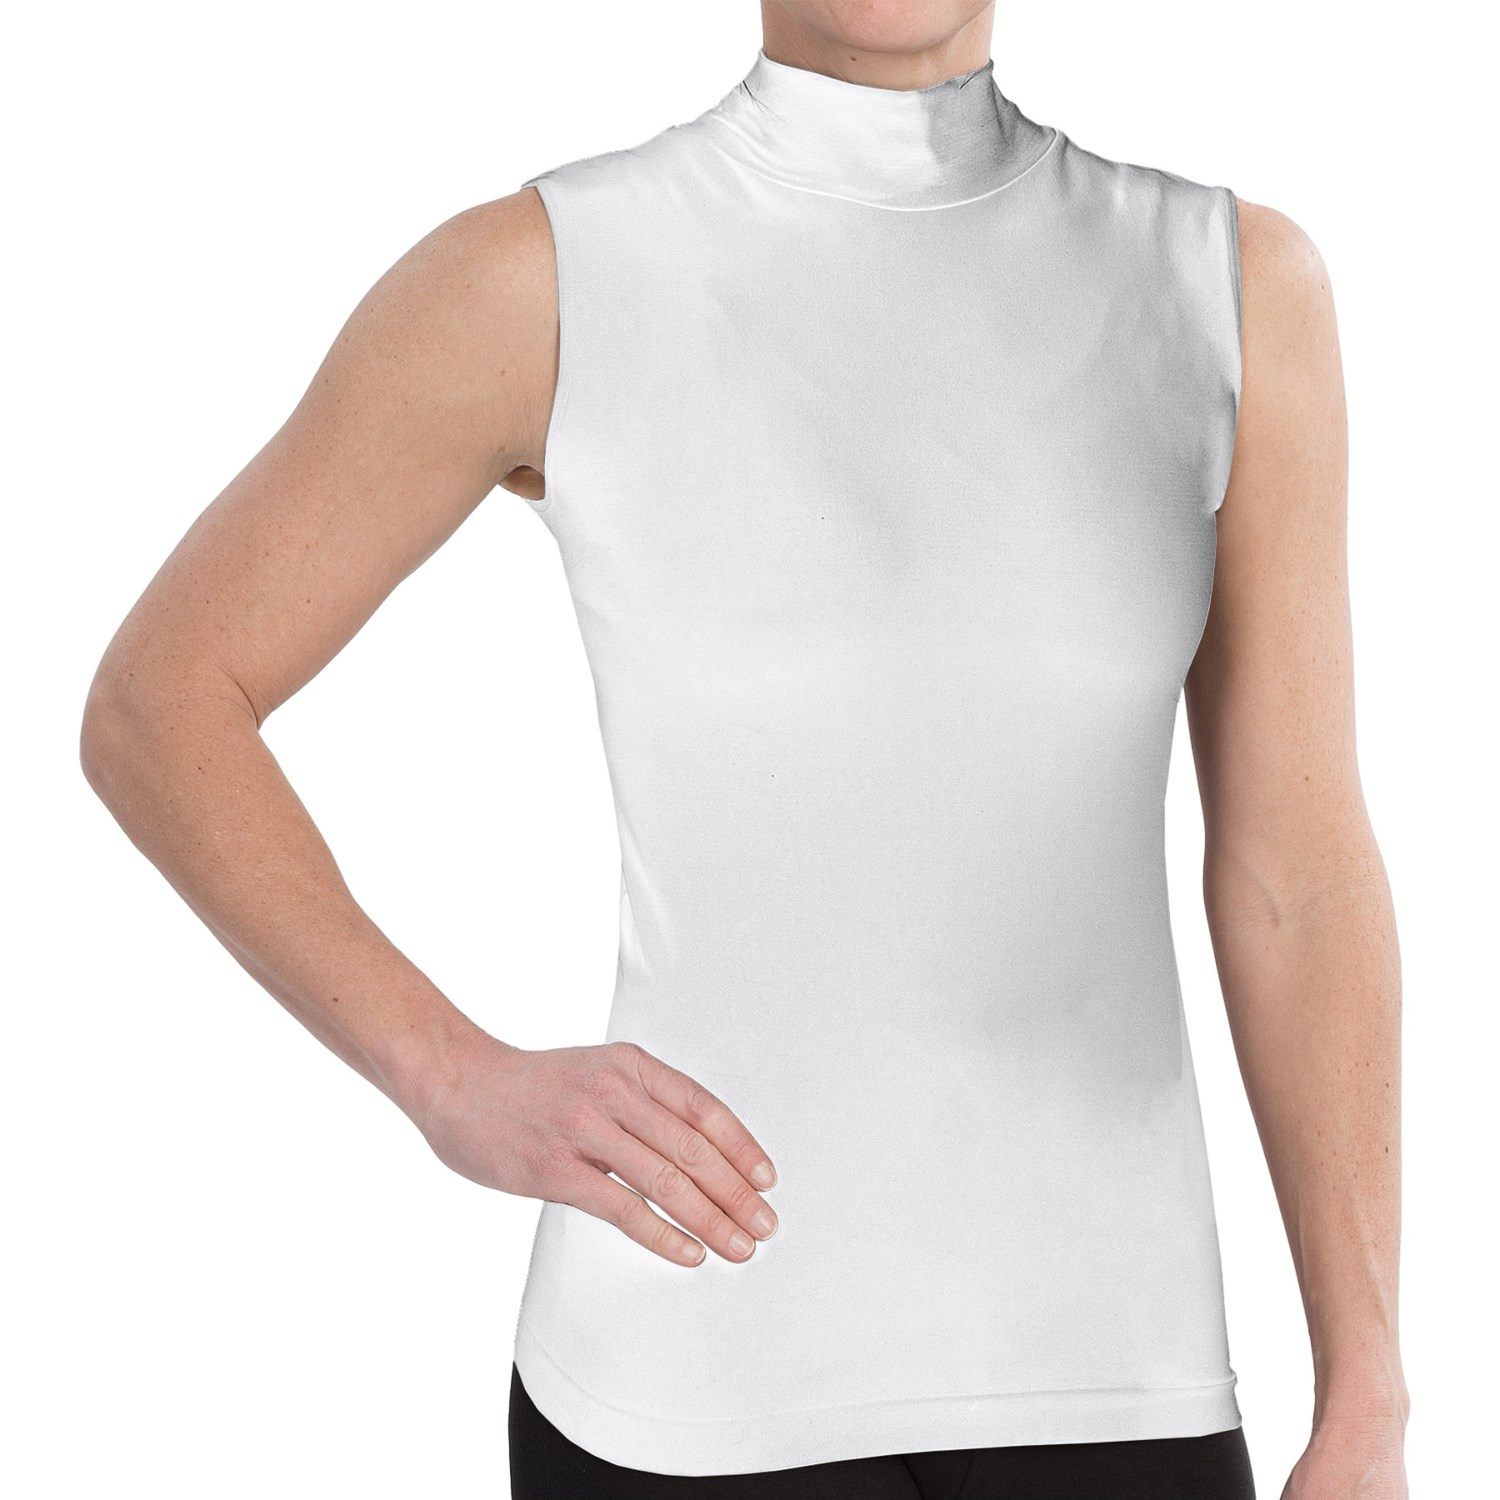 Fdj french dressing shirt for women save 66 for Sleeveless mock turtleneck shirts